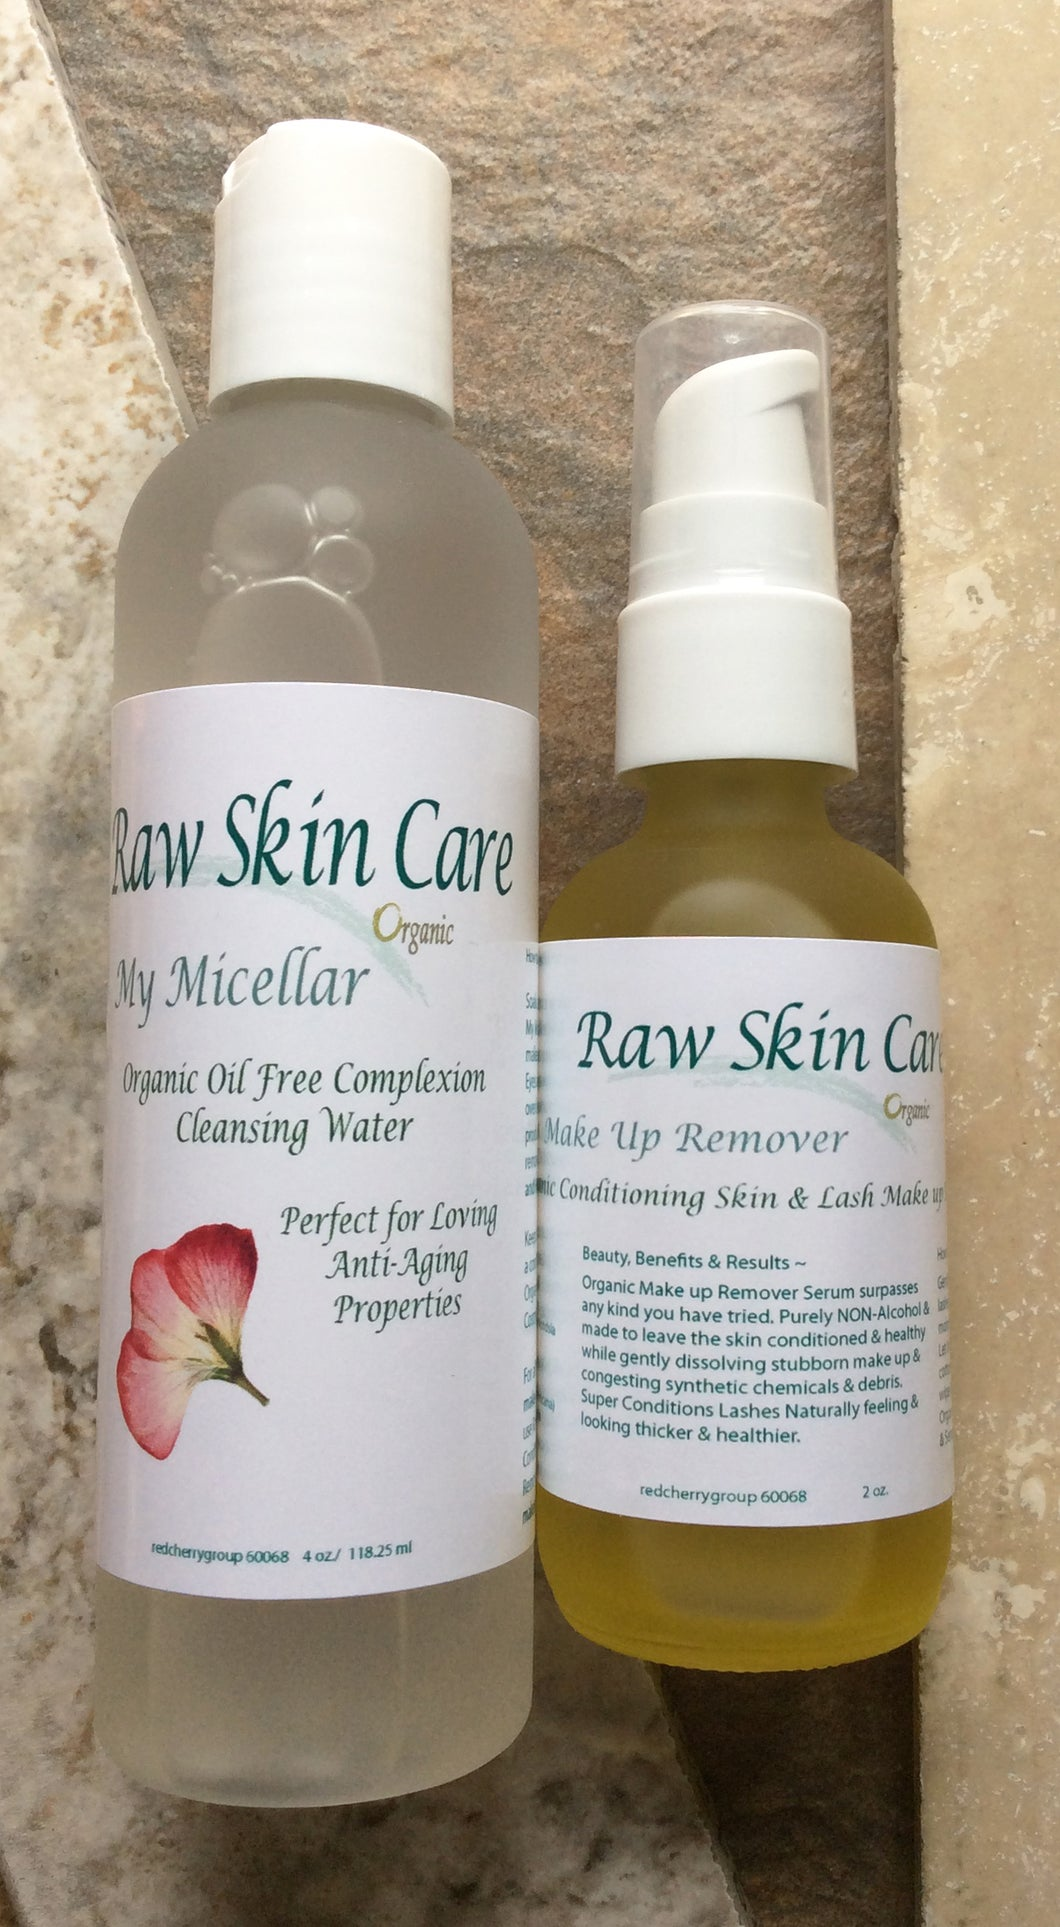 Perfect Duo Organic Make Up Remover for Anti-Aging